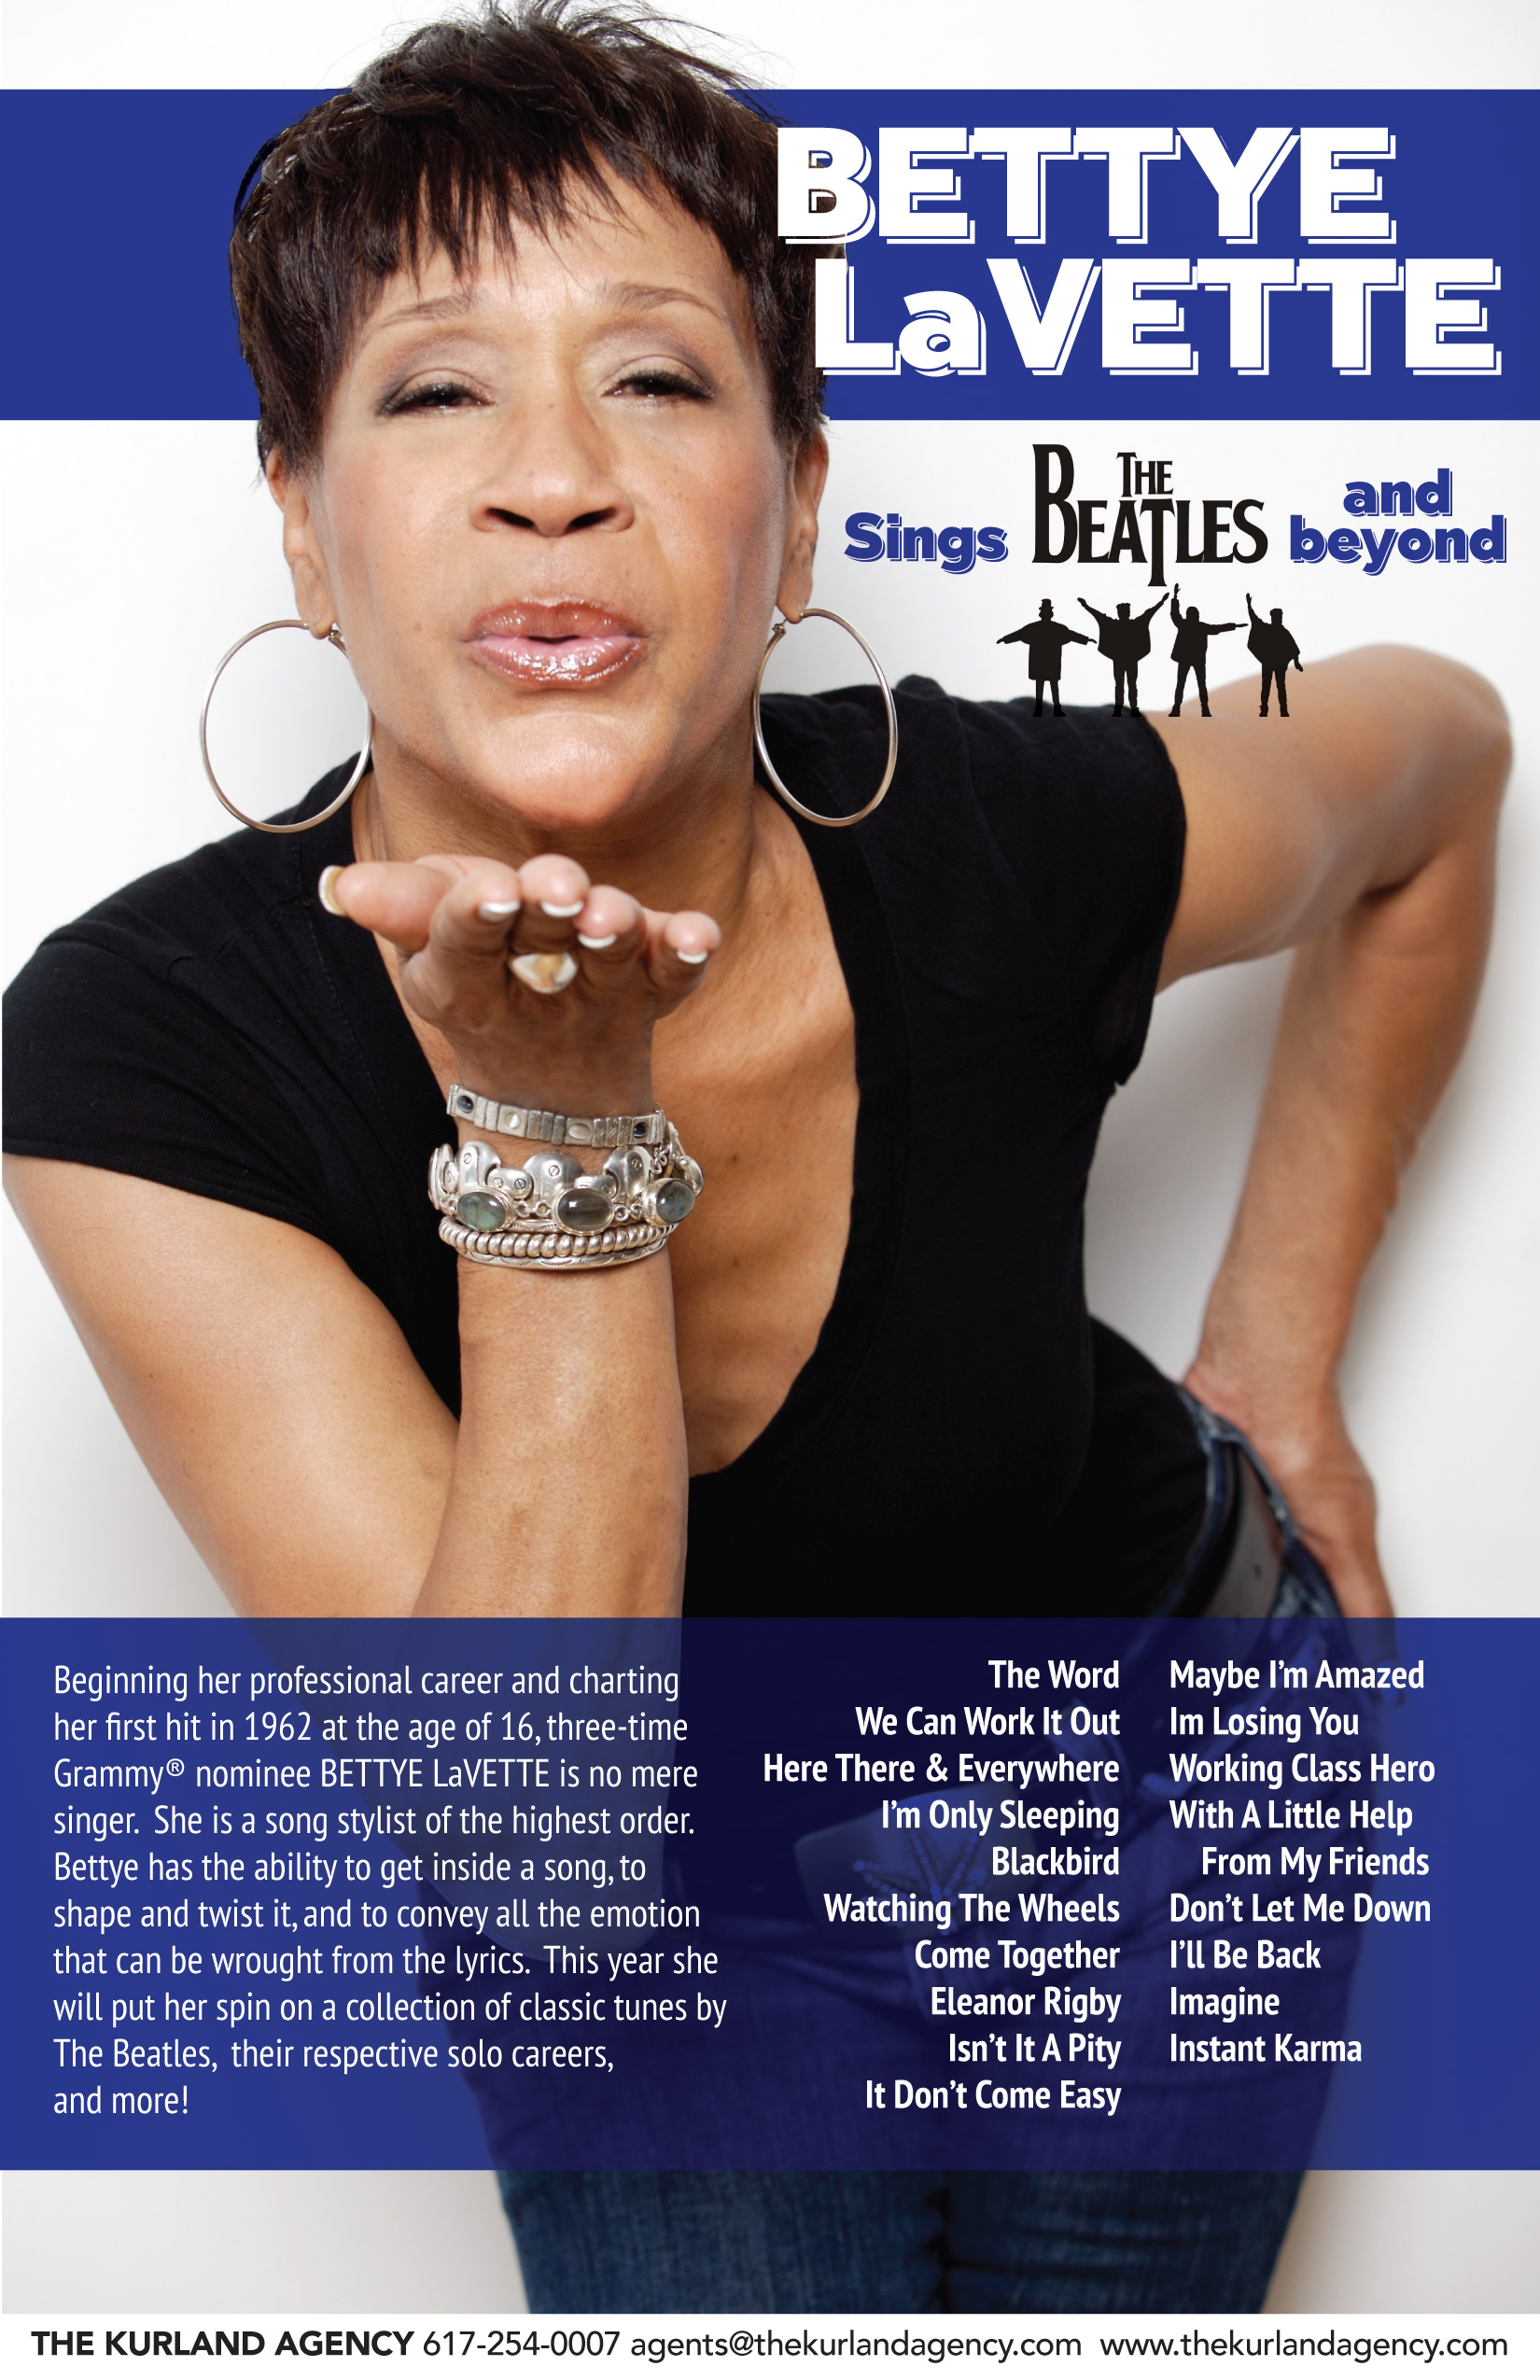 Bettye LaVette Sings The Beatles And Beyond